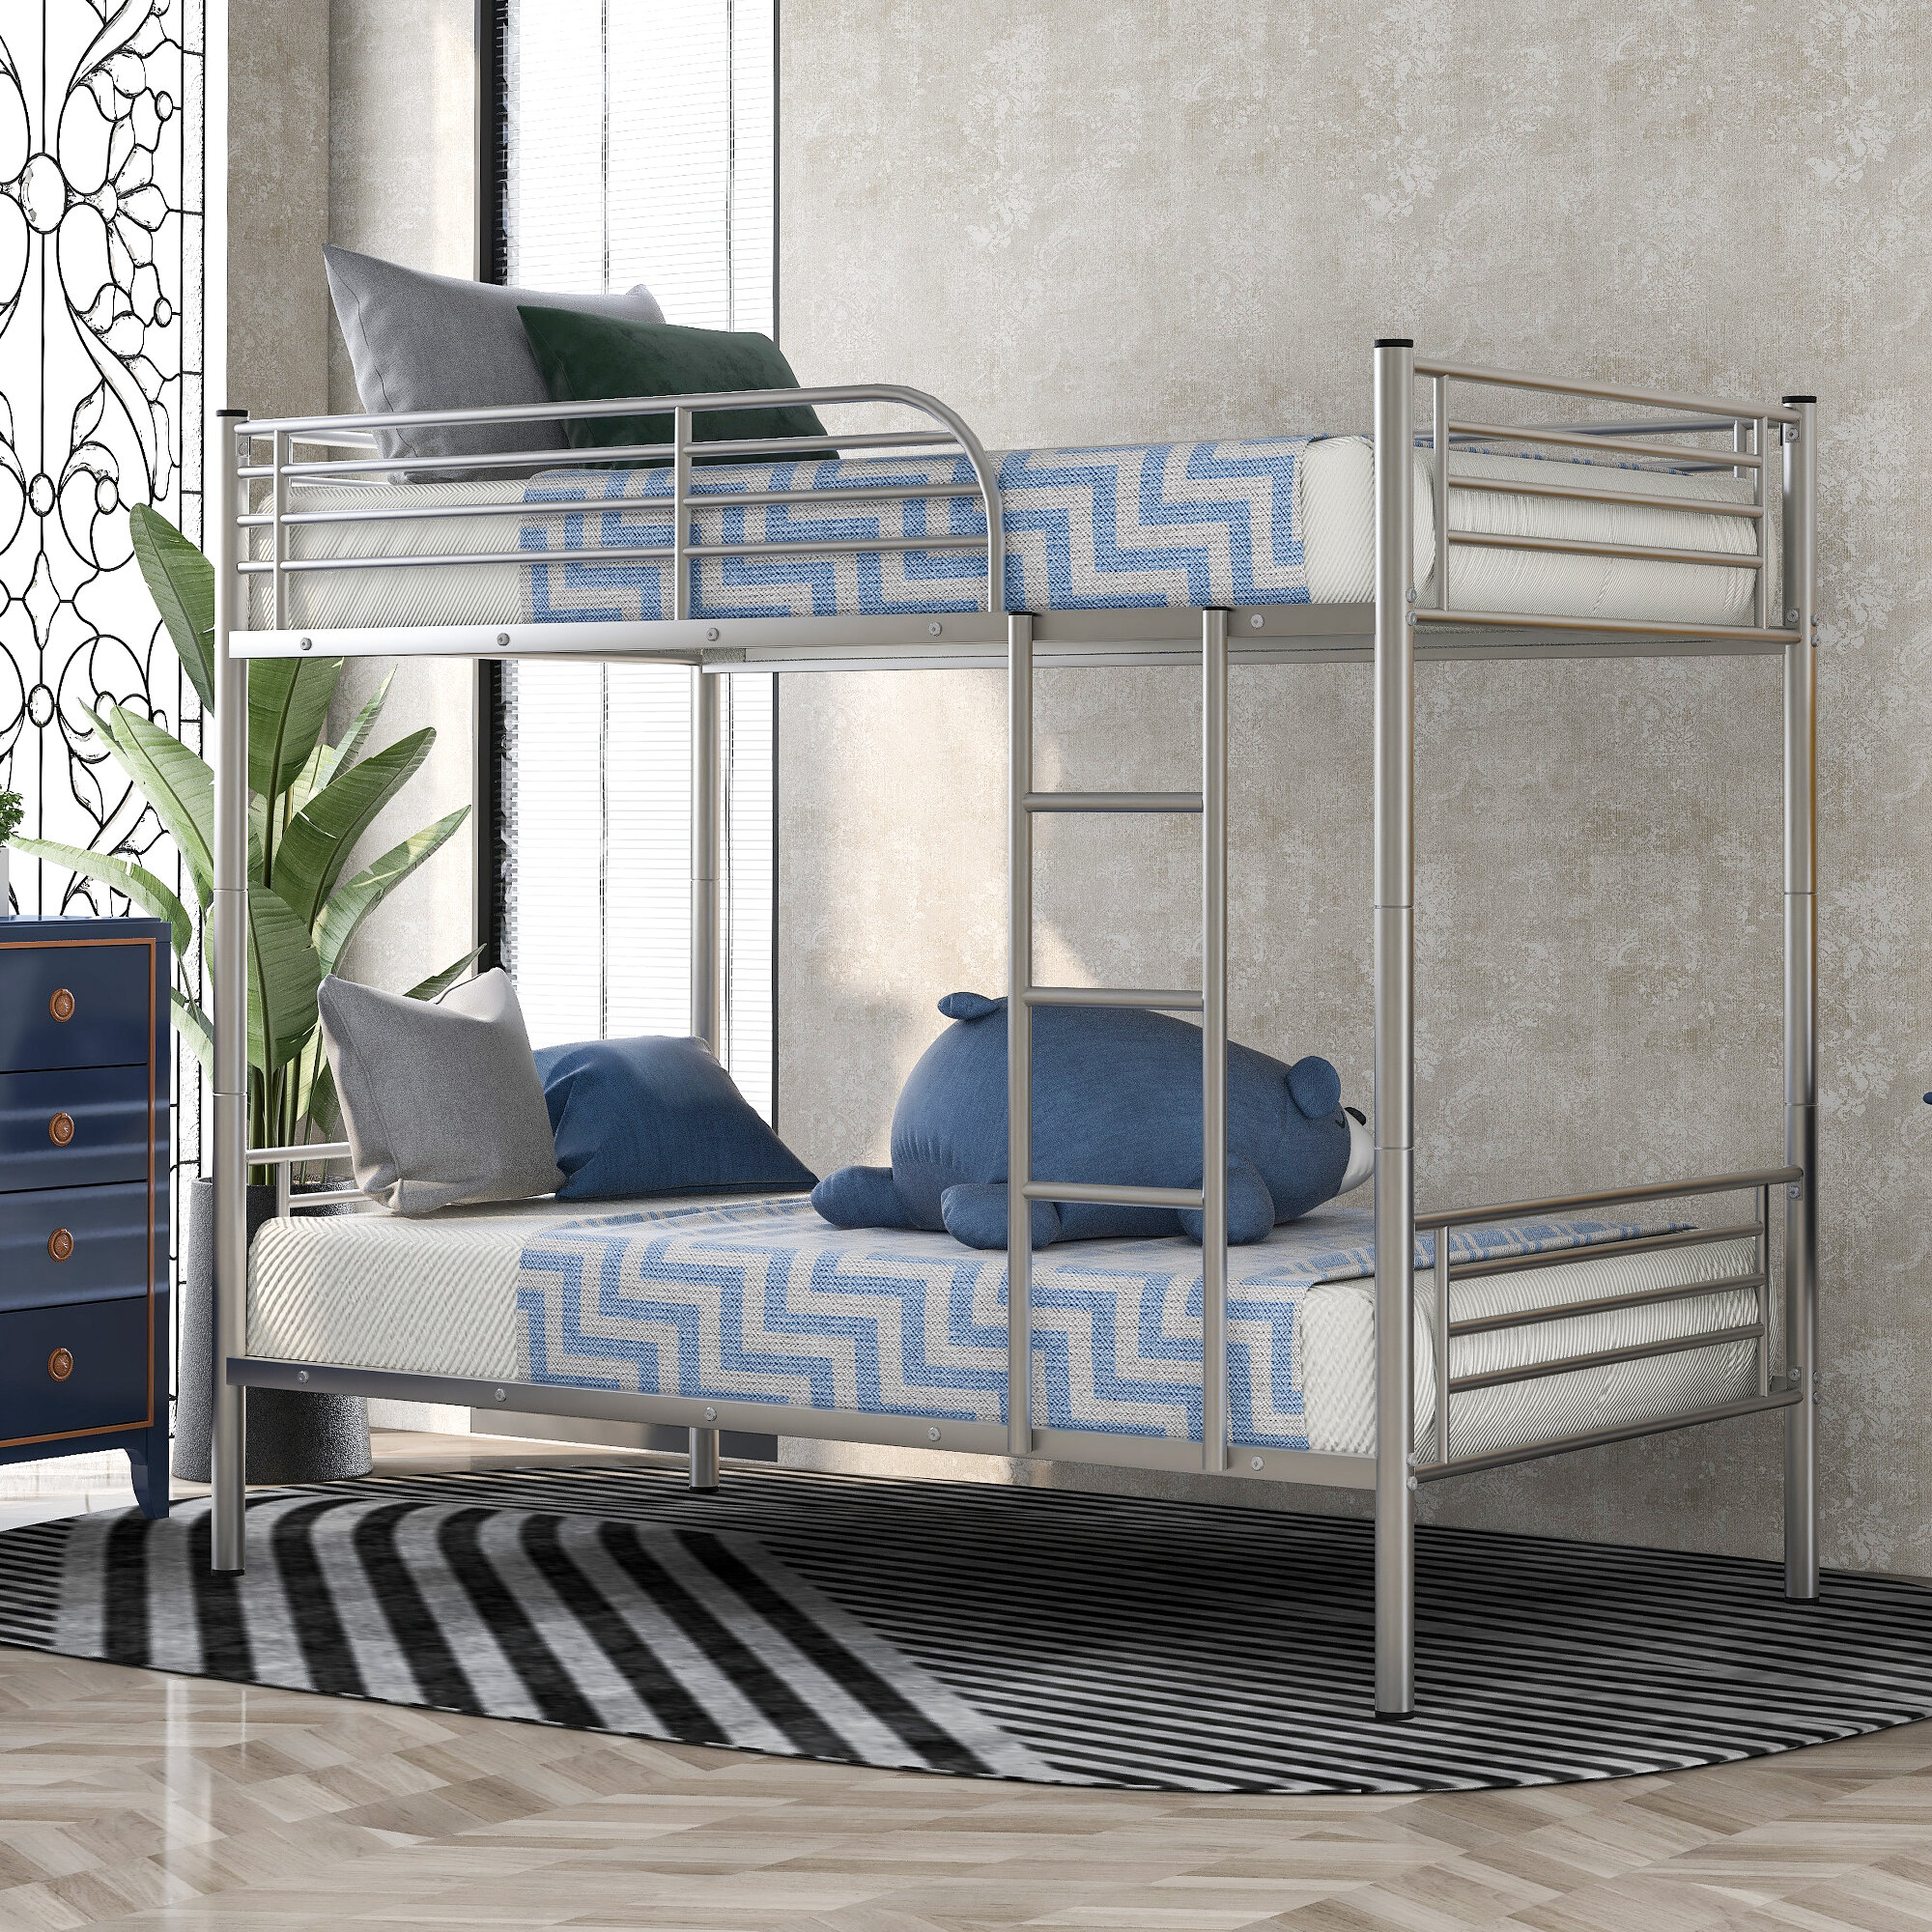 Image of: Isabelle Max Twin Over Full Bunk Bed Metal Frame Bunk Bed For Bedroom Dorm Boys Girls Adults Wayfair